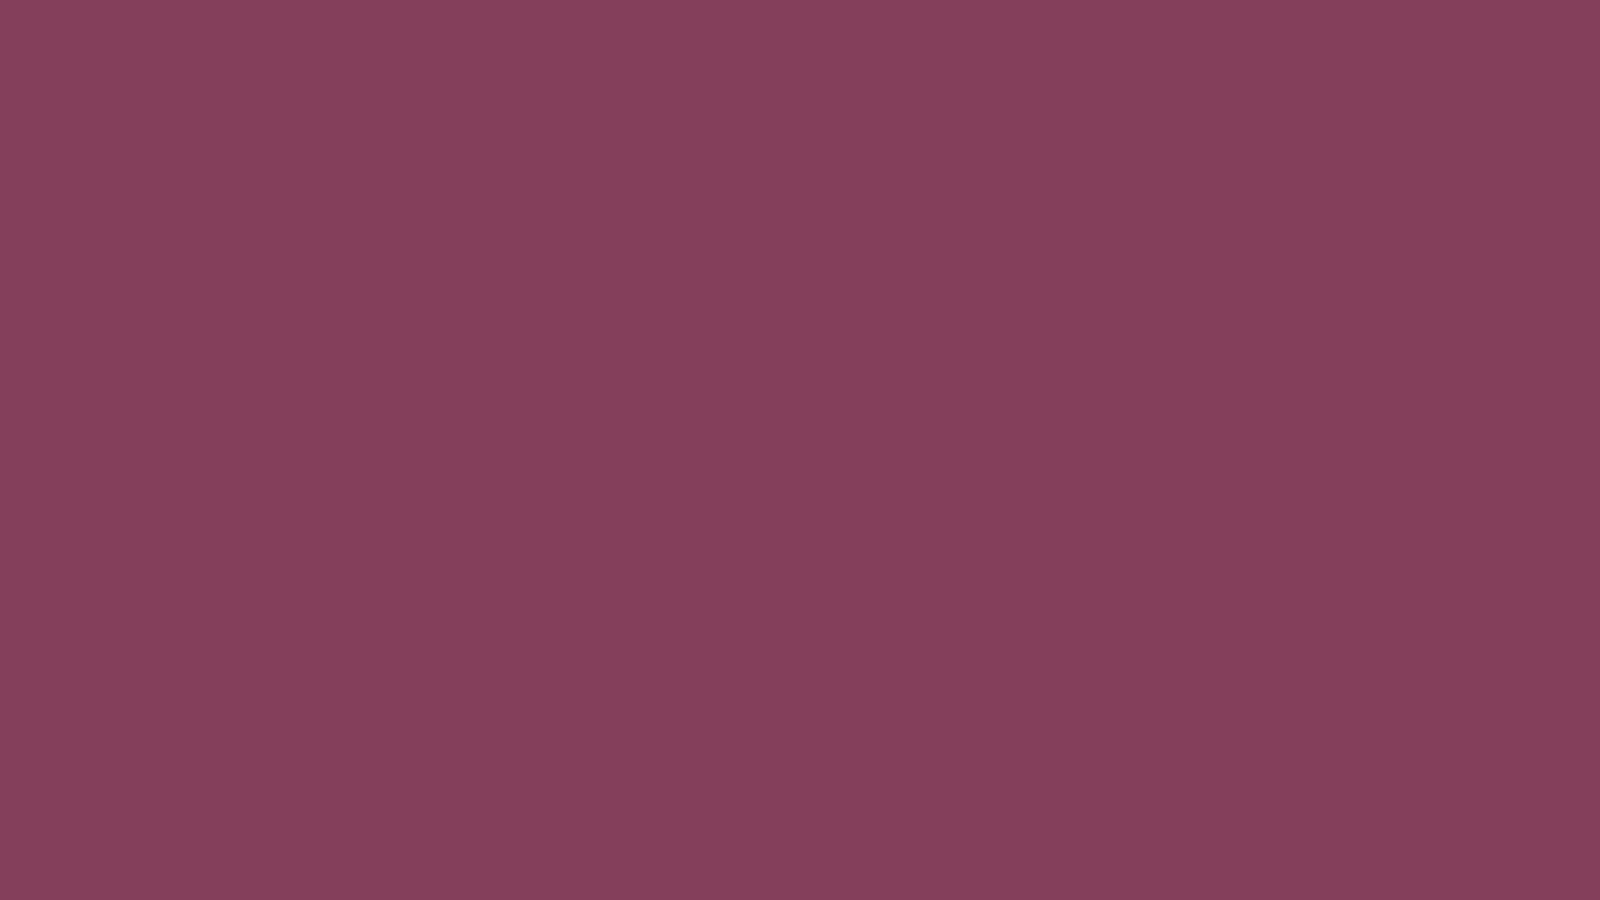 1600x900 Deep Ruby Solid Color Background